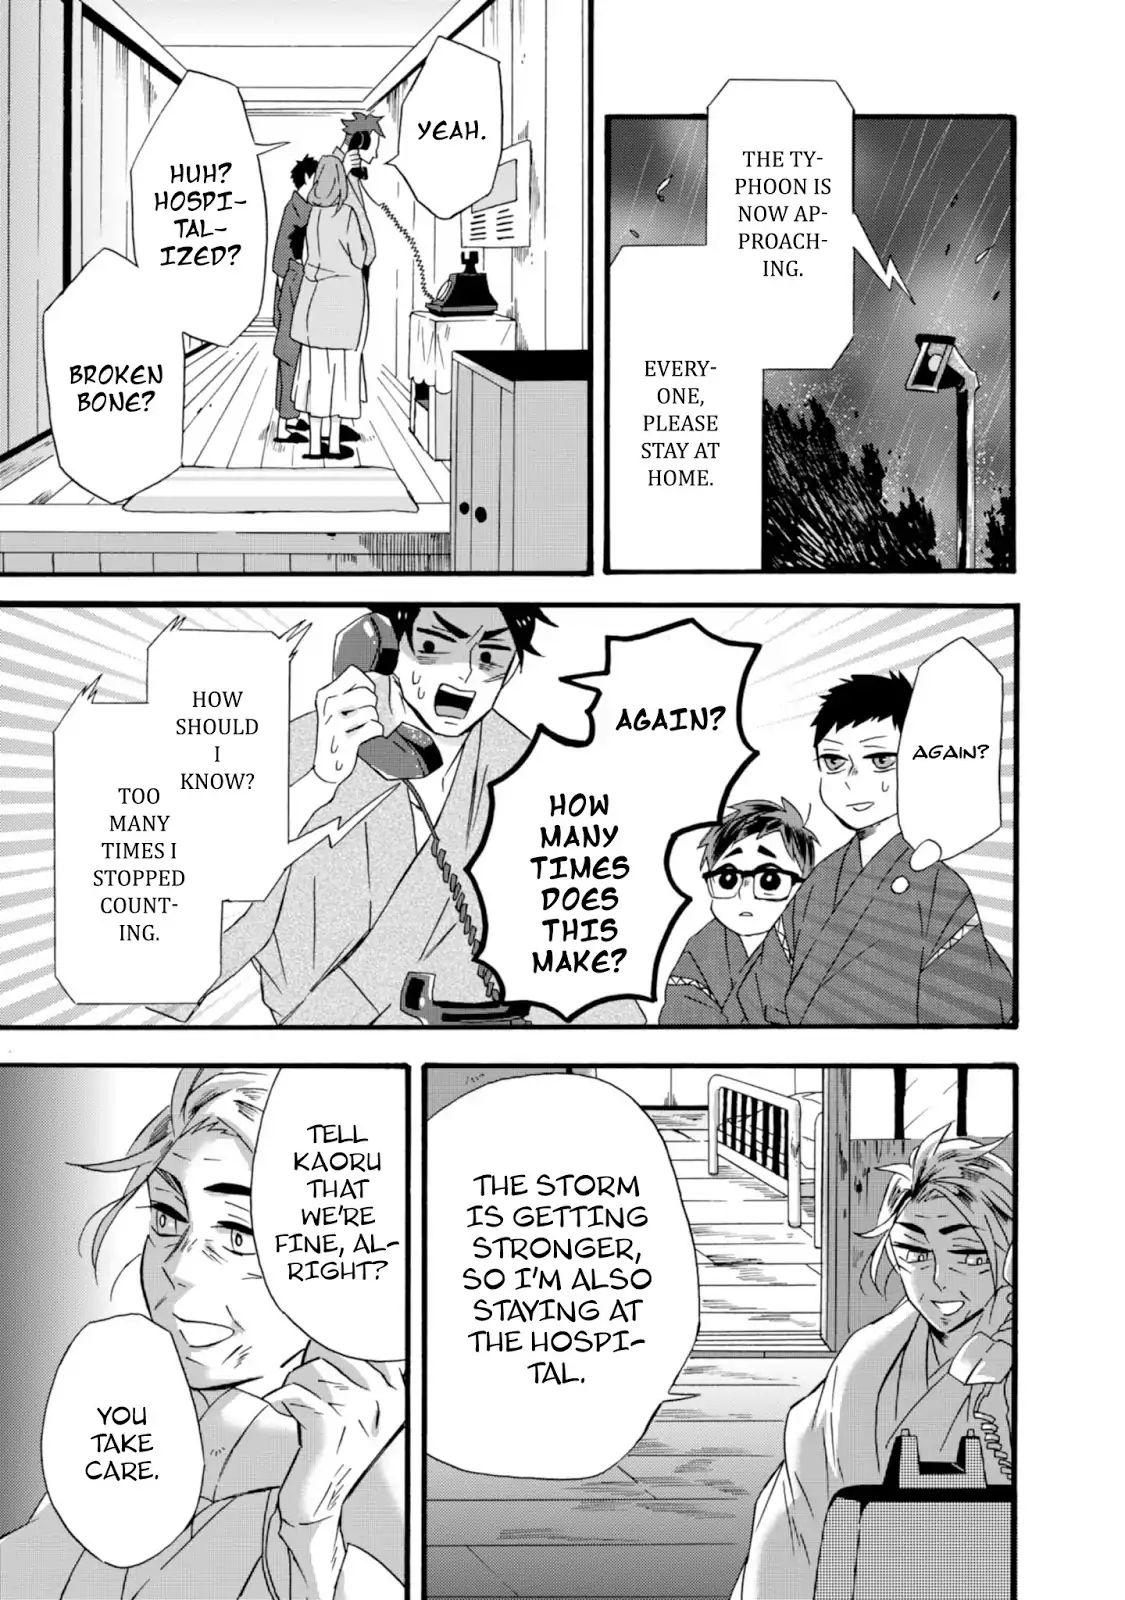 Will You Marry Me Again If You Are Reborn? Vol.2 Chapter 10: From Sunny To Cloudy To A Storm page 15 - Mangakakalots.com